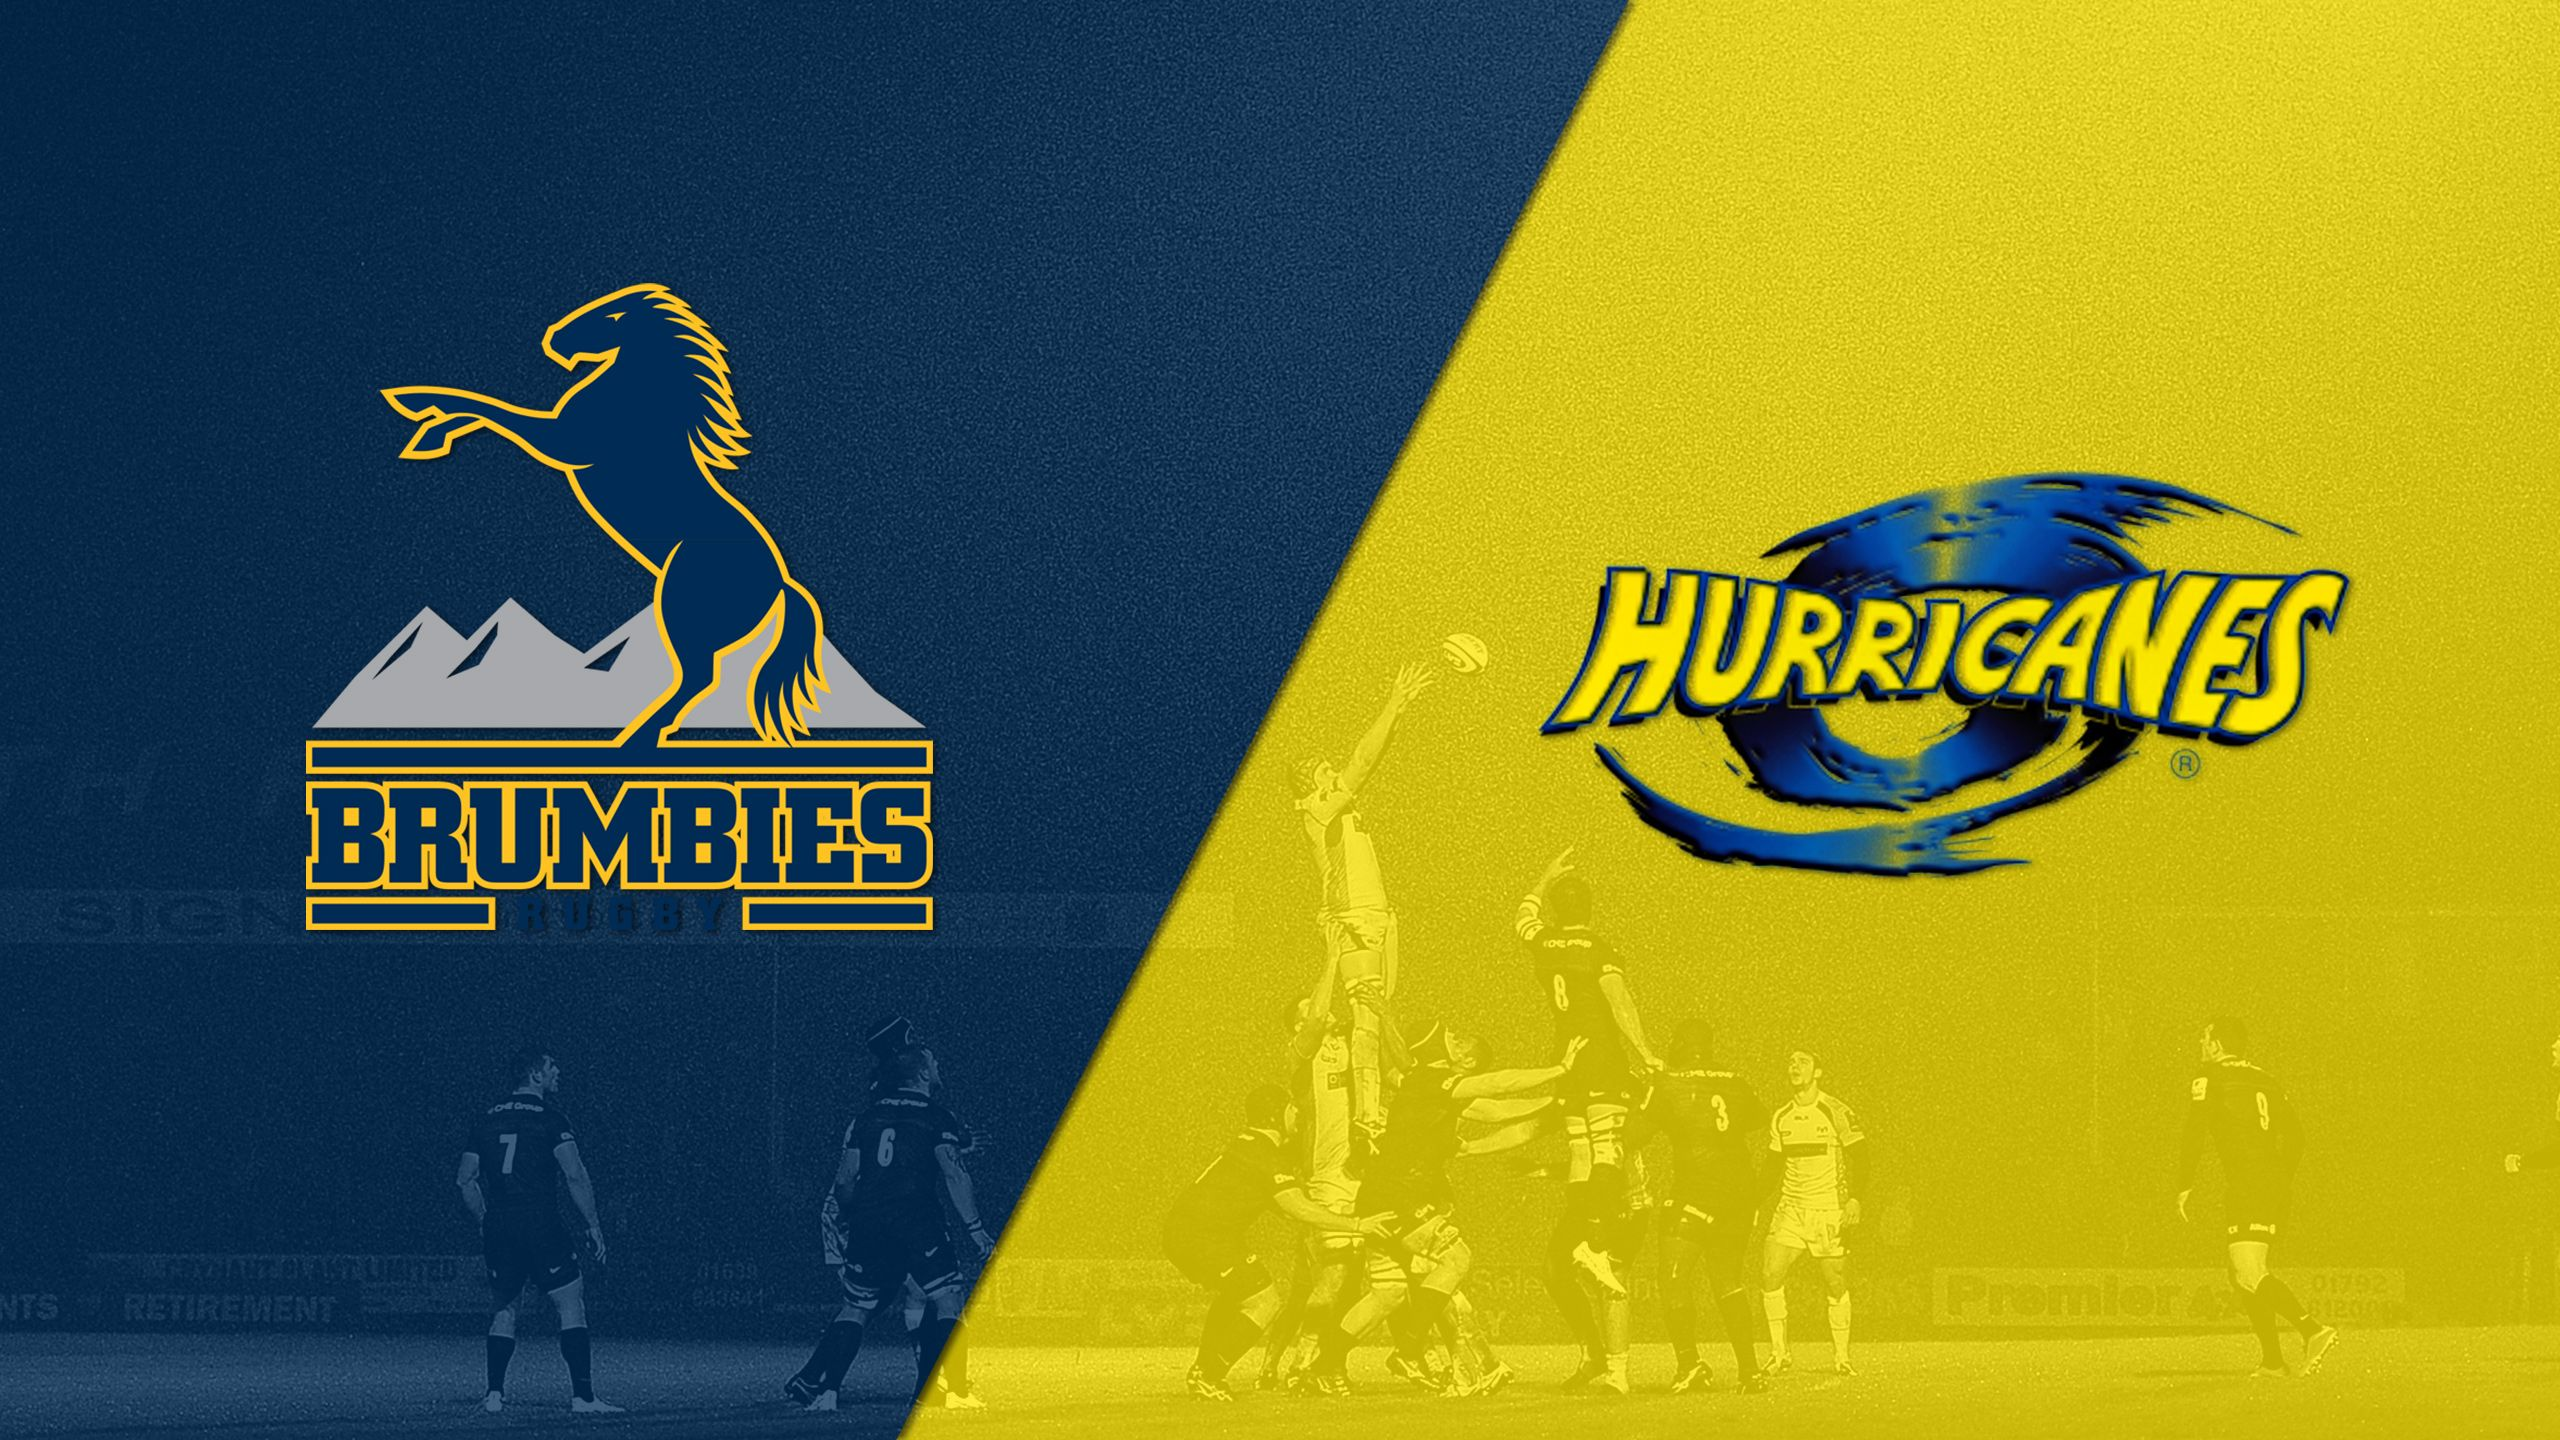 Brumbies vs. Hurricanes (Super Rugby)